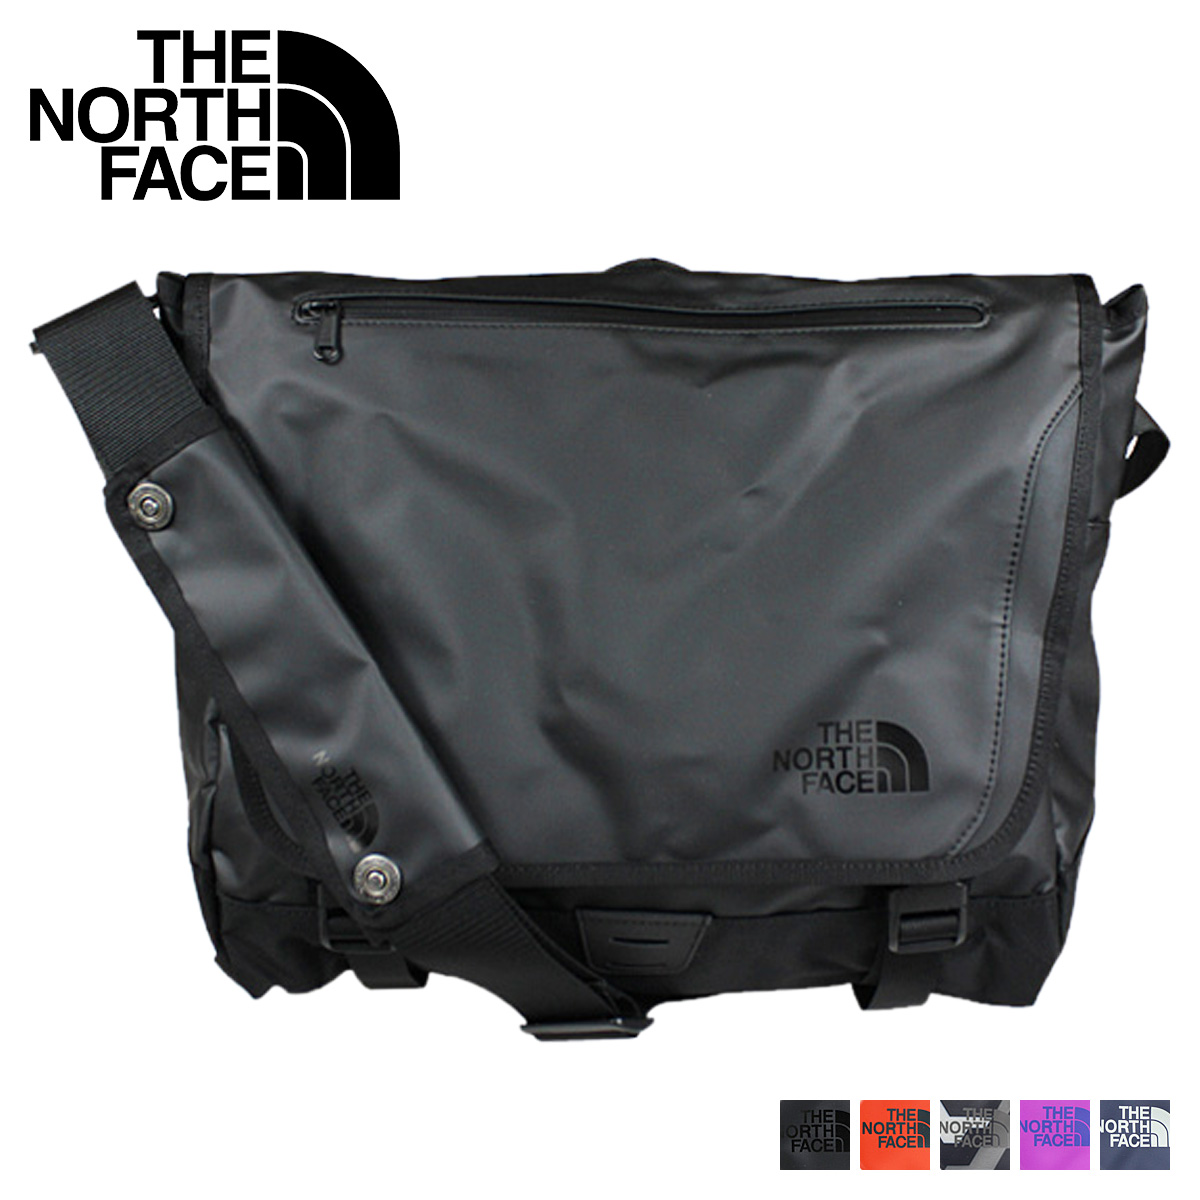 The North face THE NORTH FACE messenger bag  5 colors  A7KU BASE CAMP  MESSENGER MEDIUM men  1 22 Shinnyu load   regular  baeed275ae8a1